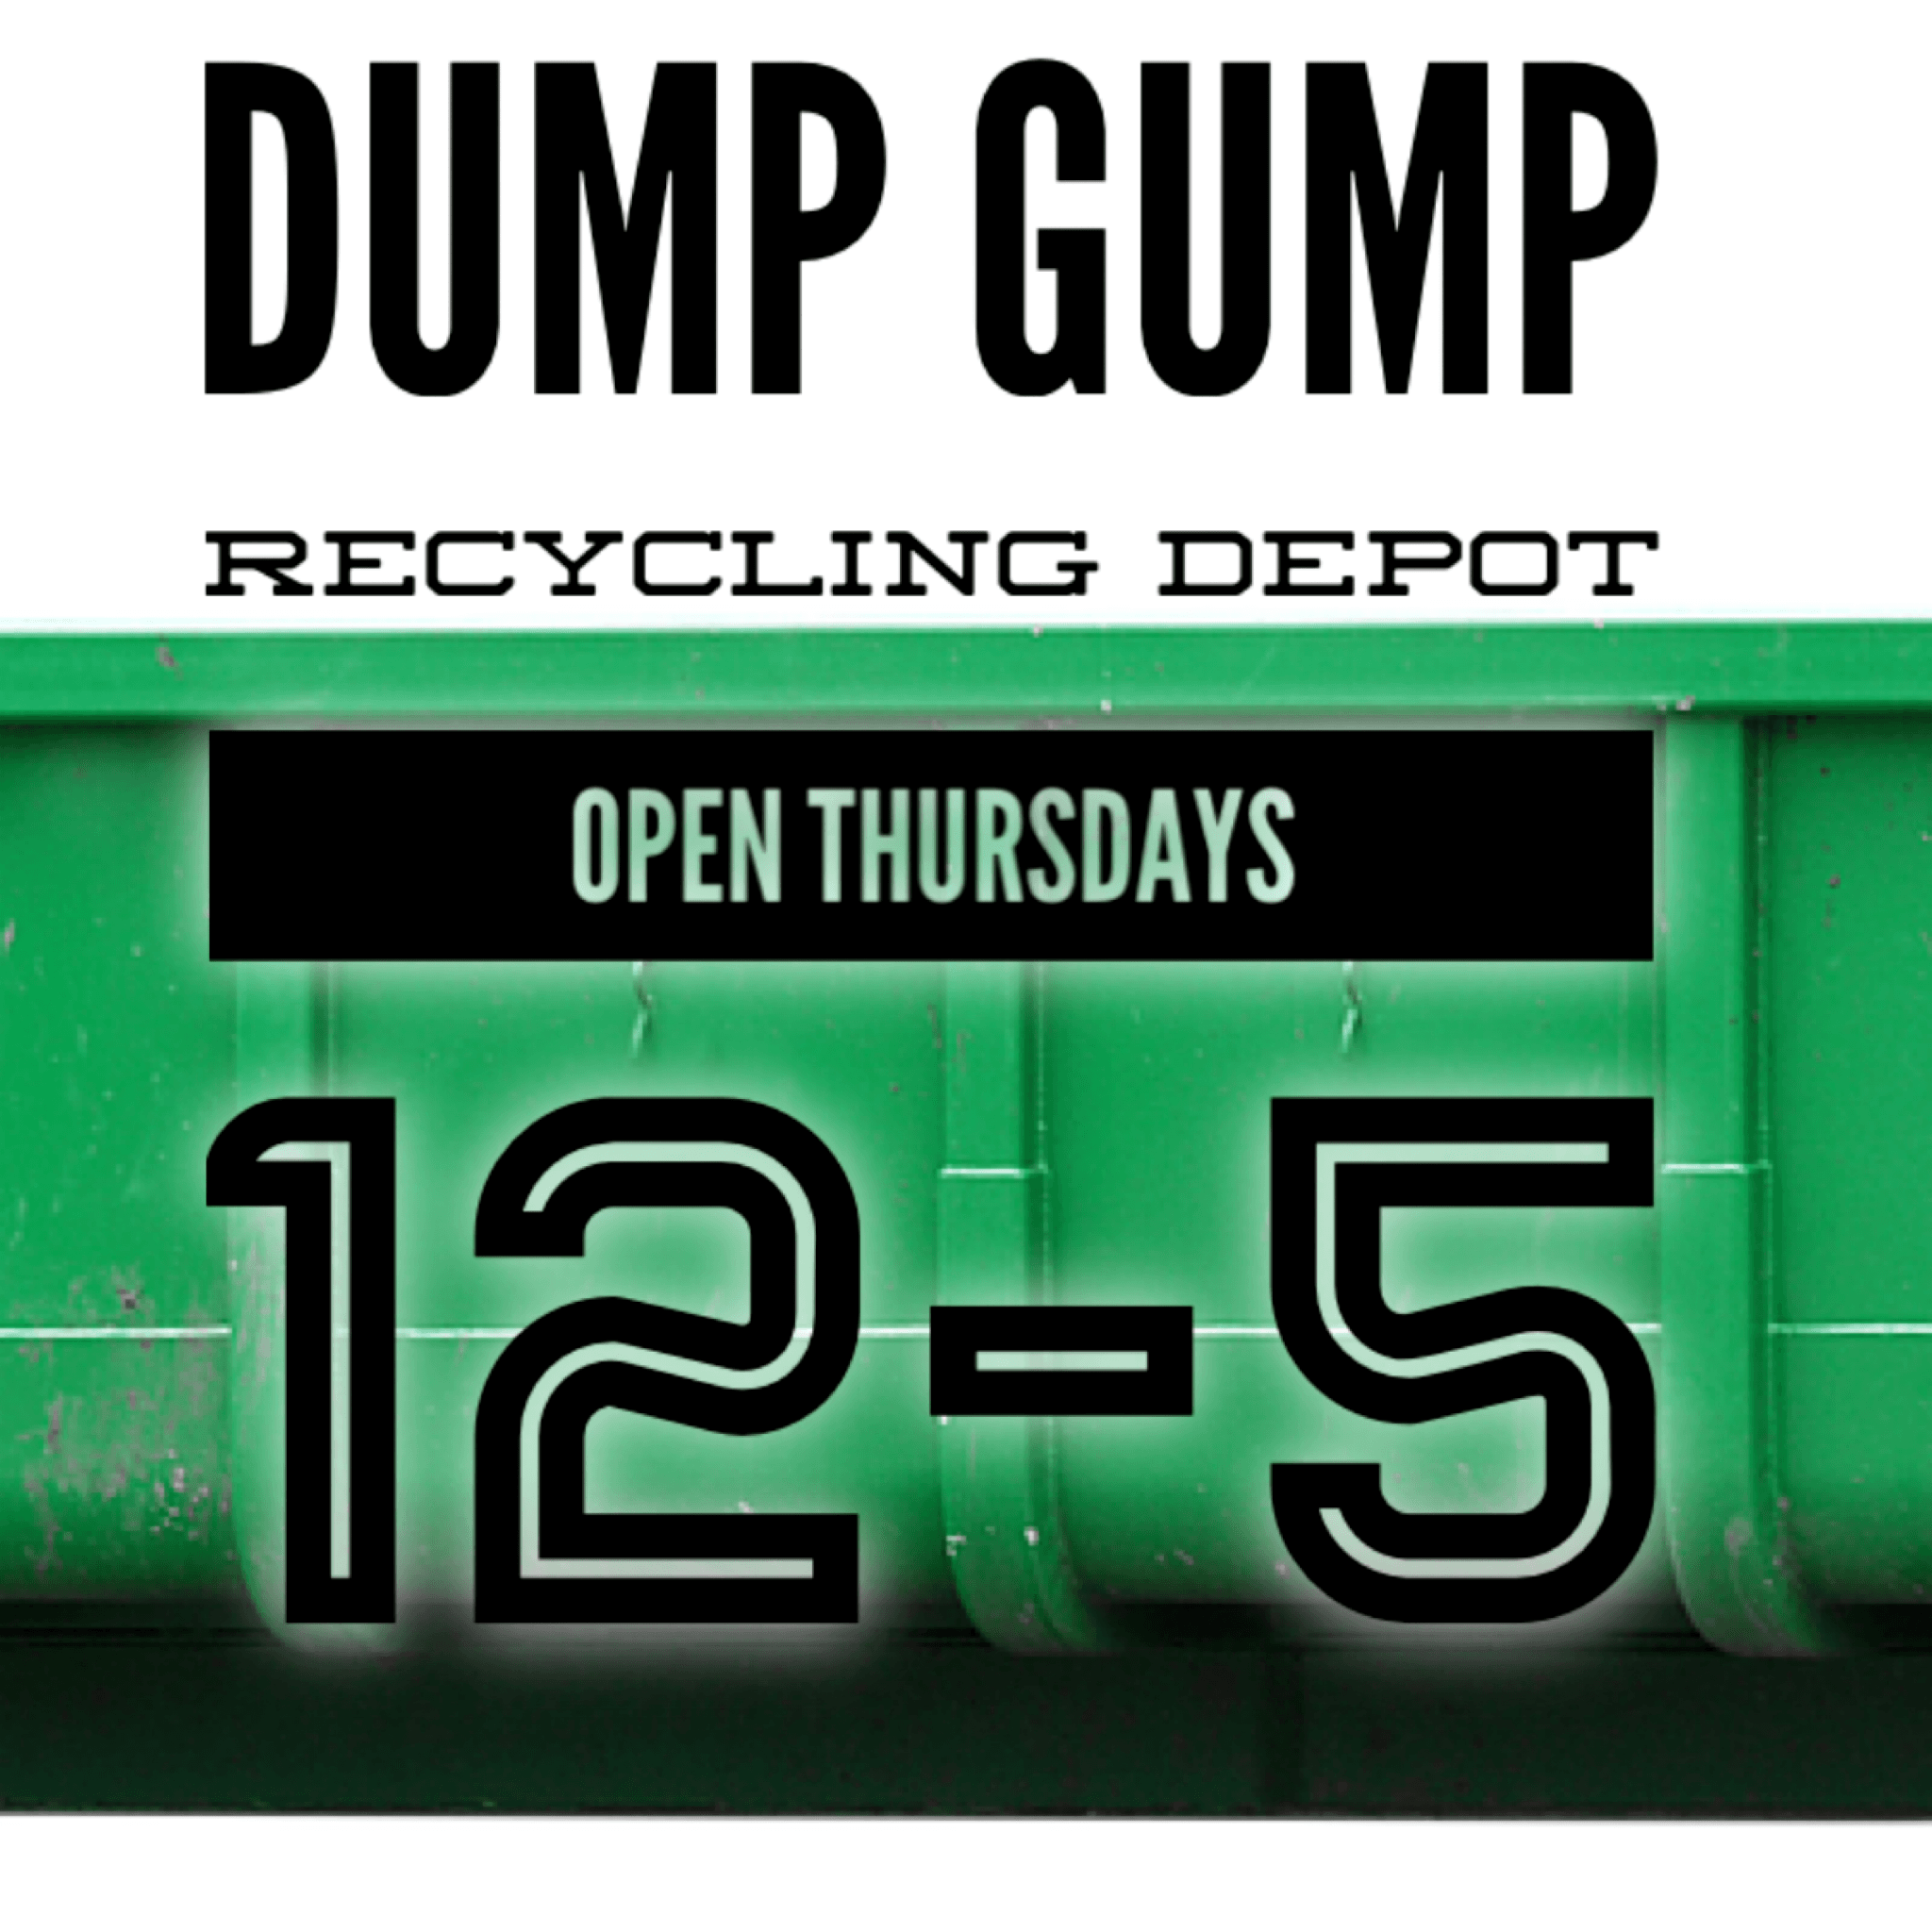 dump gump recycling depot new hours